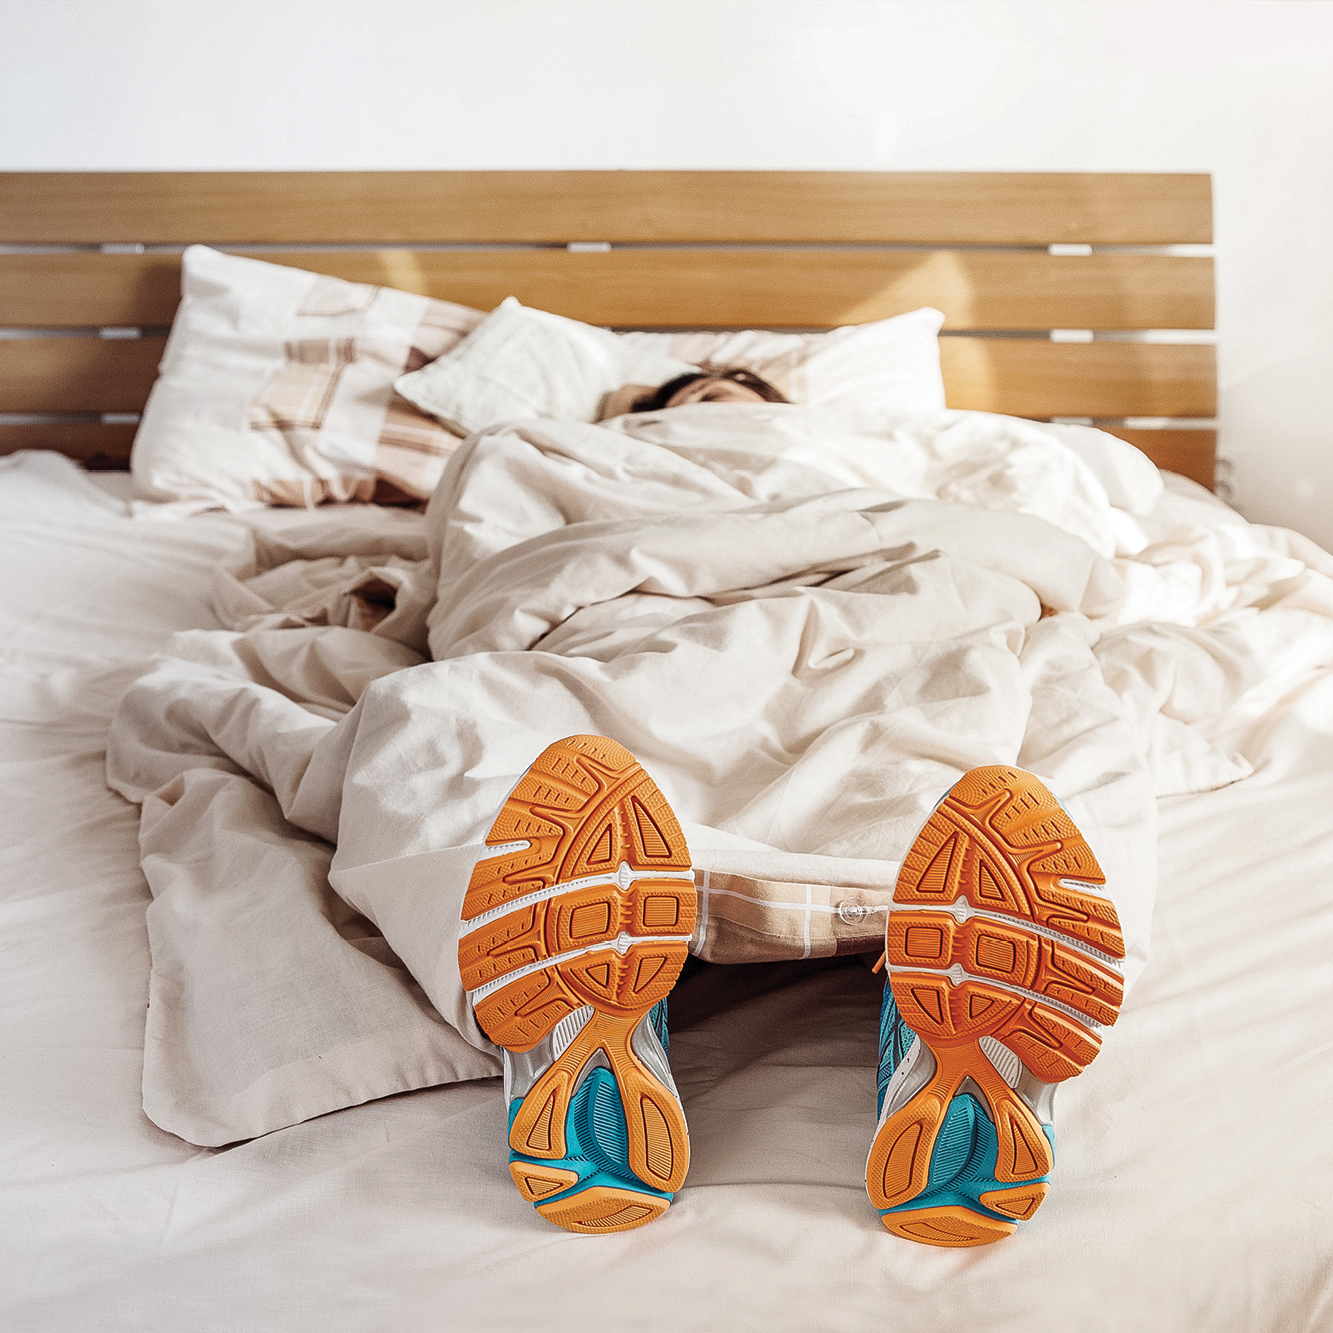 Exercise or Sleep? What's More Important?